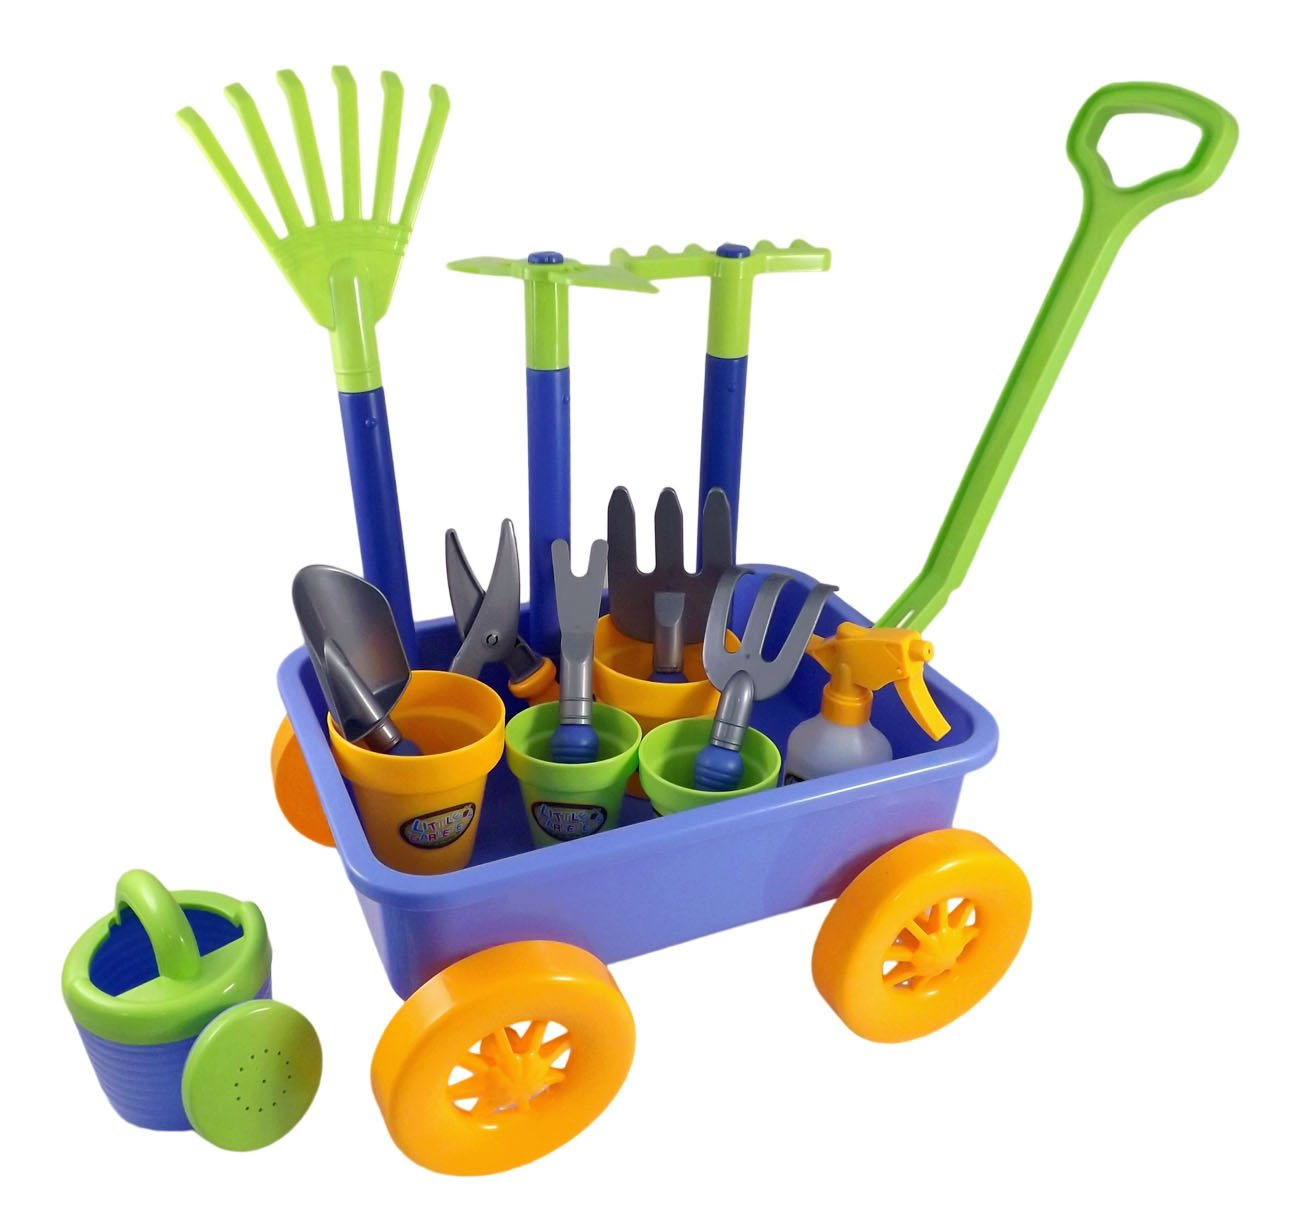 Liberty Imports Kids Garden Wagon & Tools Toy Set | Beach Sand Indoor Outdoor Backyard Gardening Kit | Ideal Gift for 3, 4, 5, 6 Year Old Boys Girls | 16 Pieces Playset